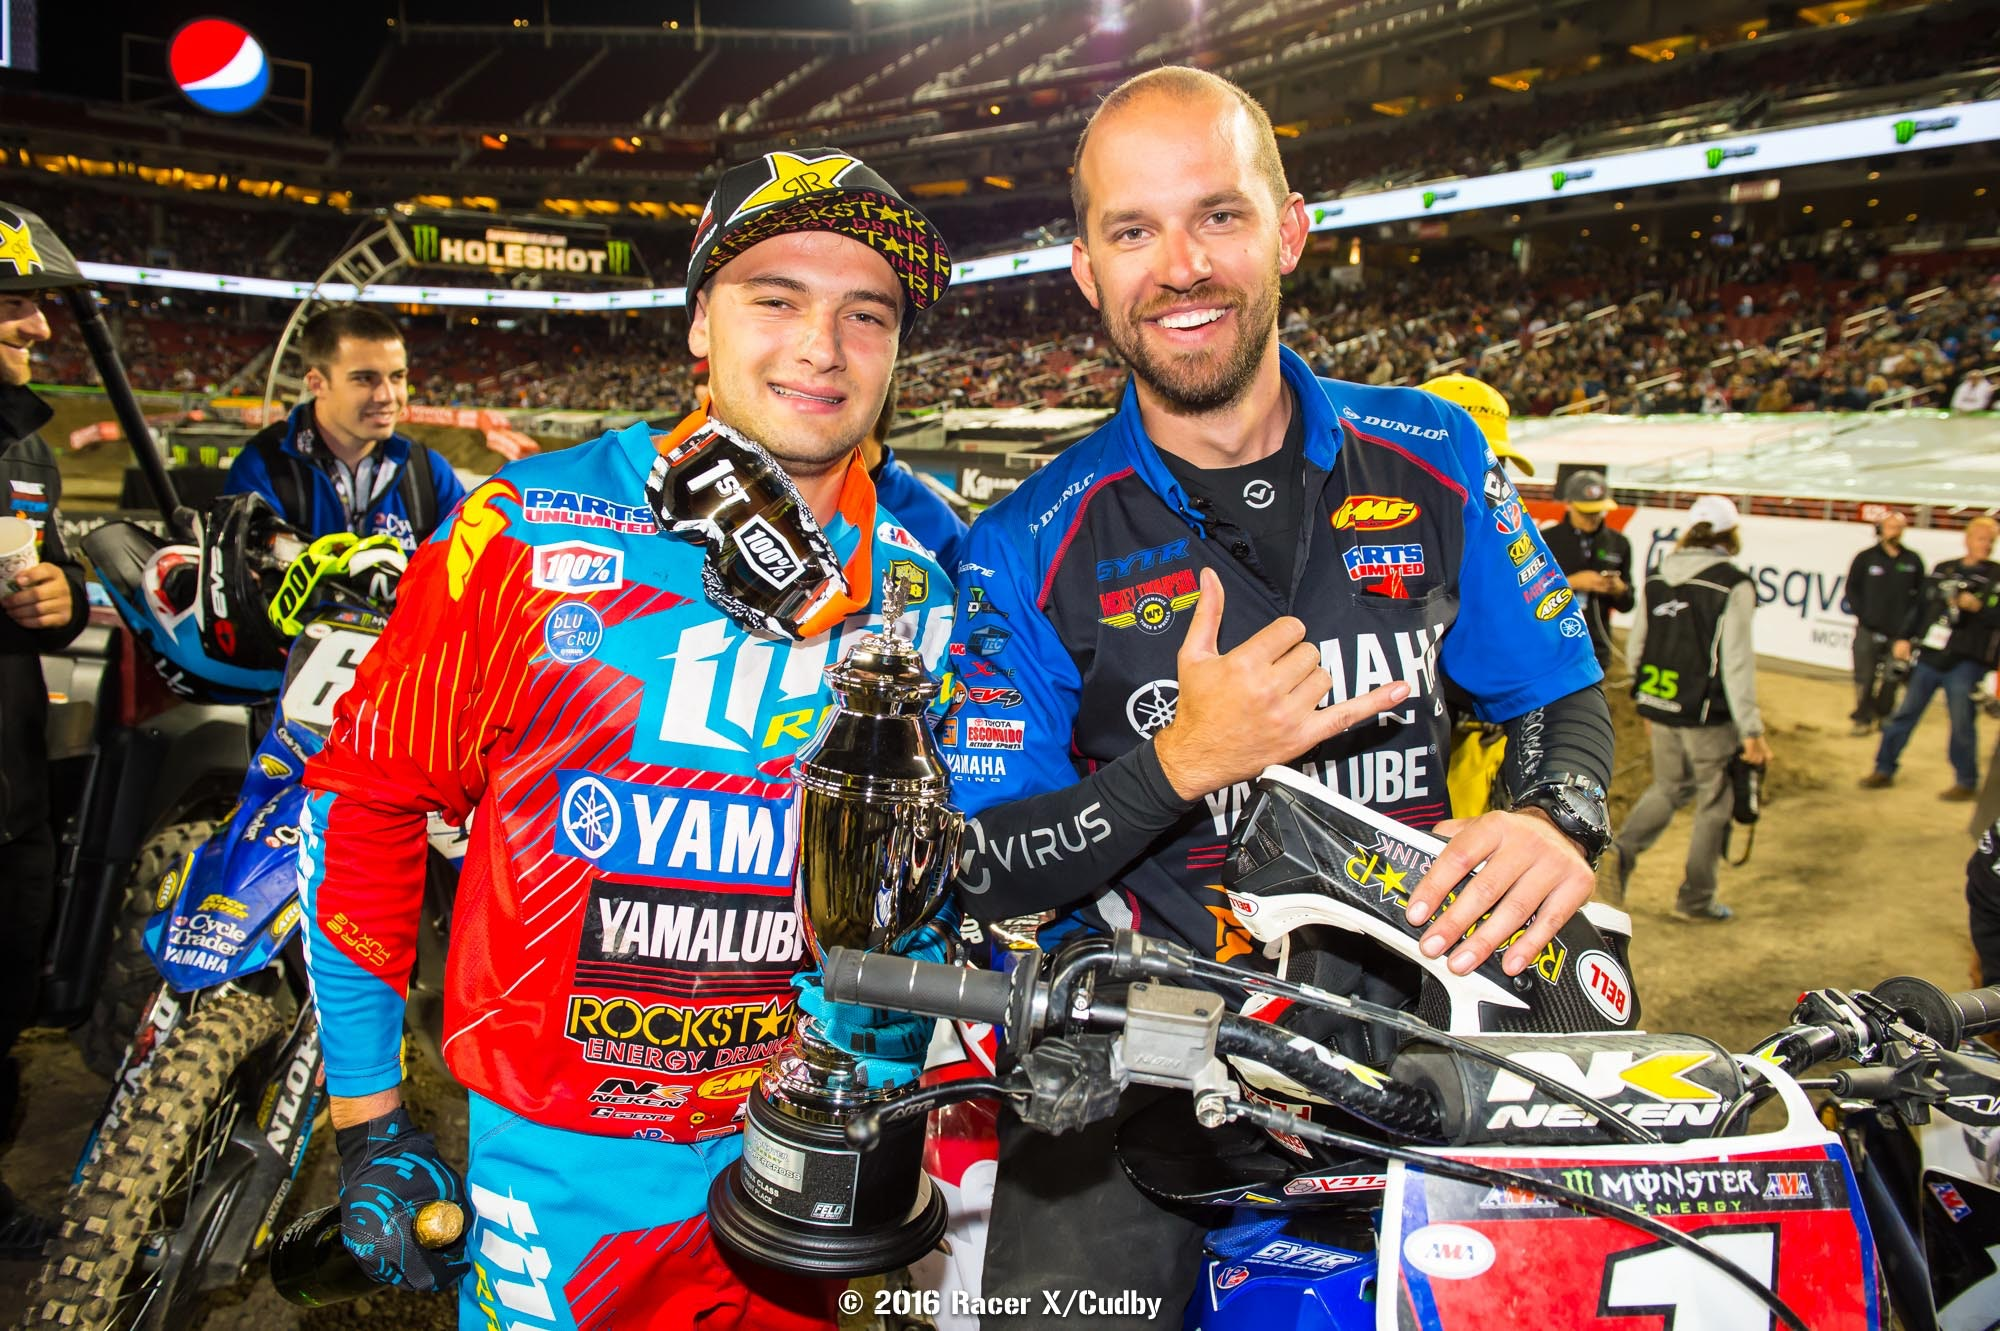 Crash or no crash during the week, Cooper Webb and his mechanic, Eric Gass, had plenty to be happy about in Santa Clara.